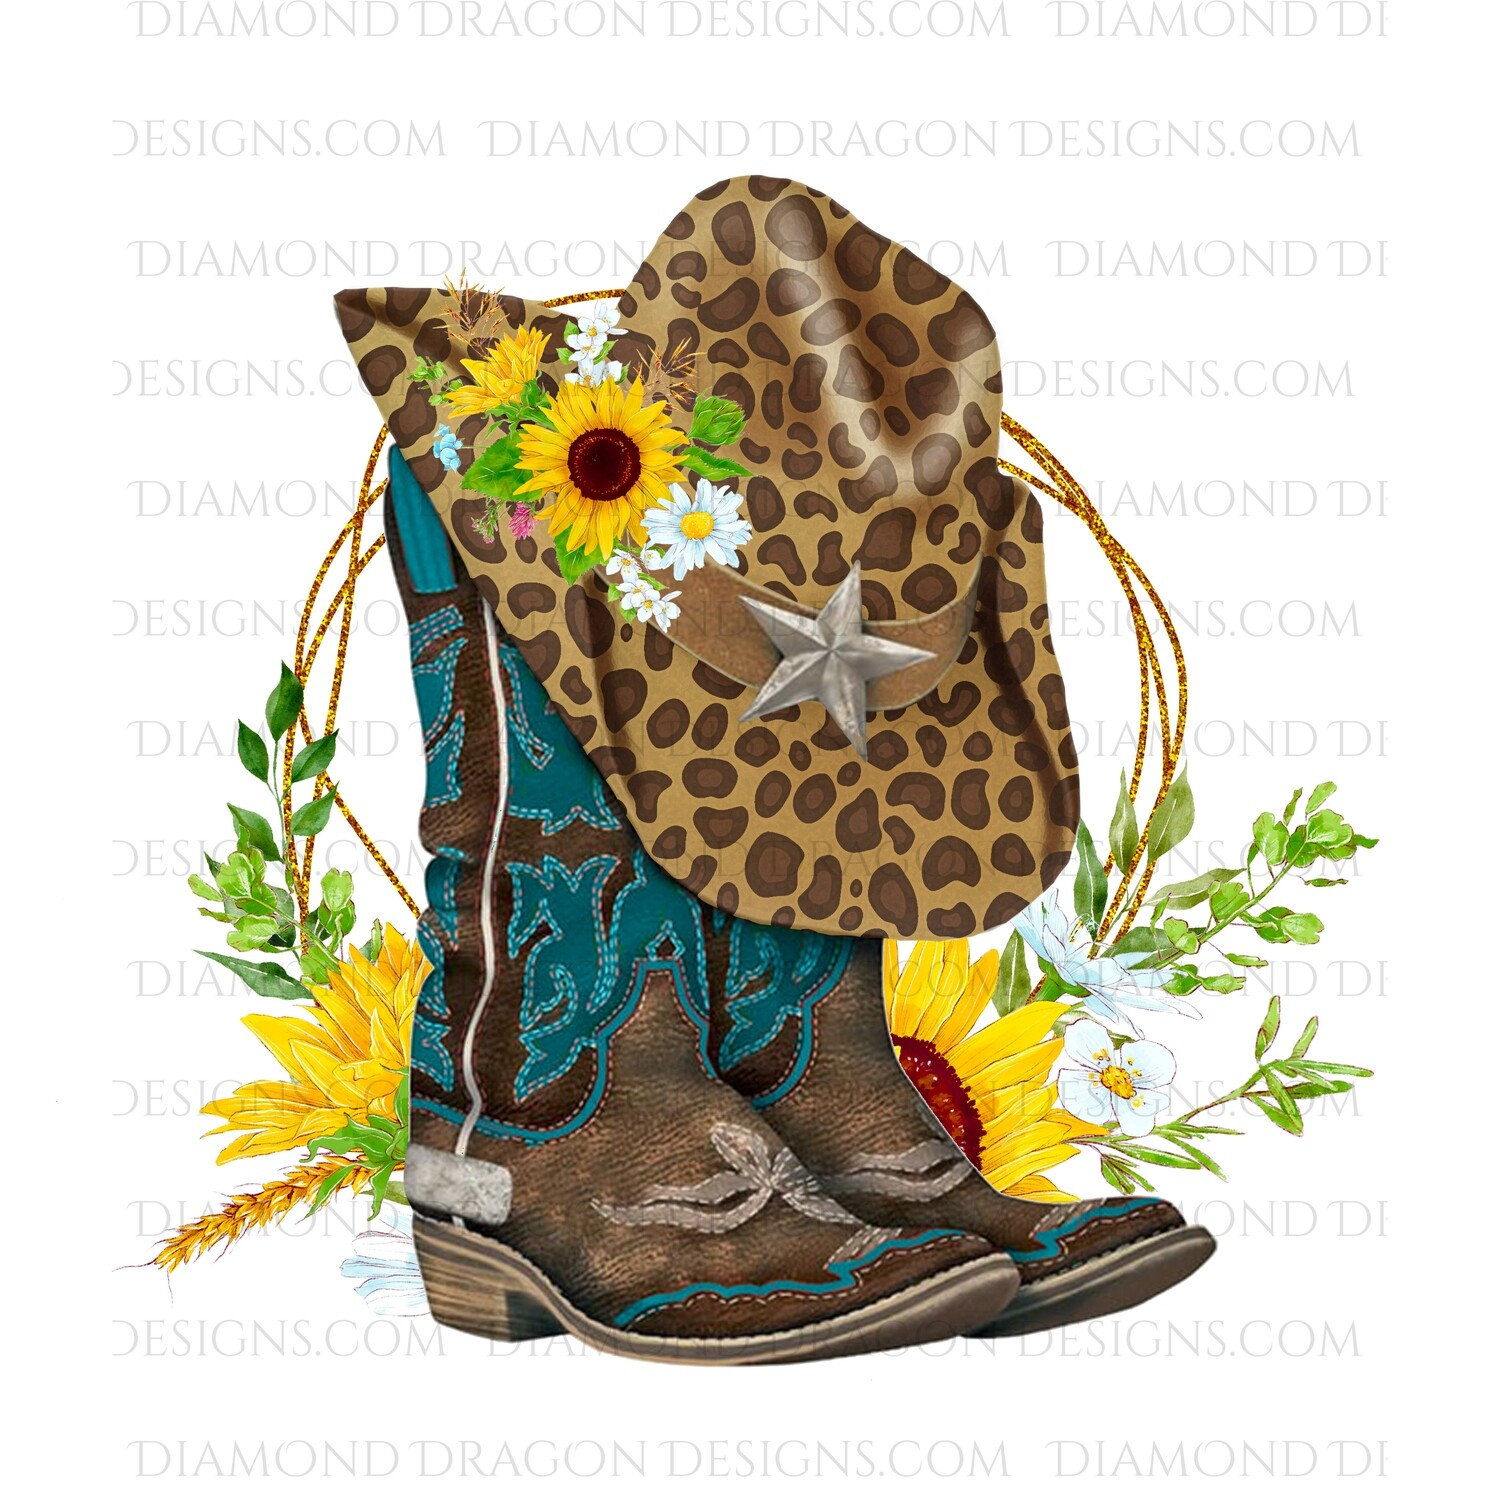 Western - Turquoise Boots, Leopard Hat, Sunflower Floral, Waterslide